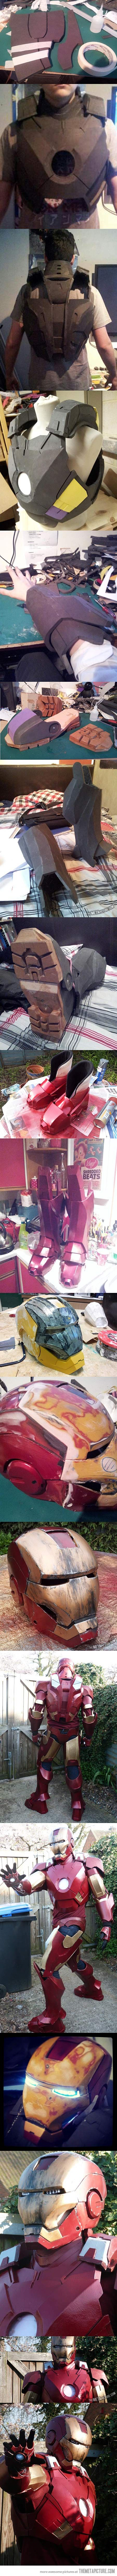 59 best eva foam armor images on pinterest armors costumes and